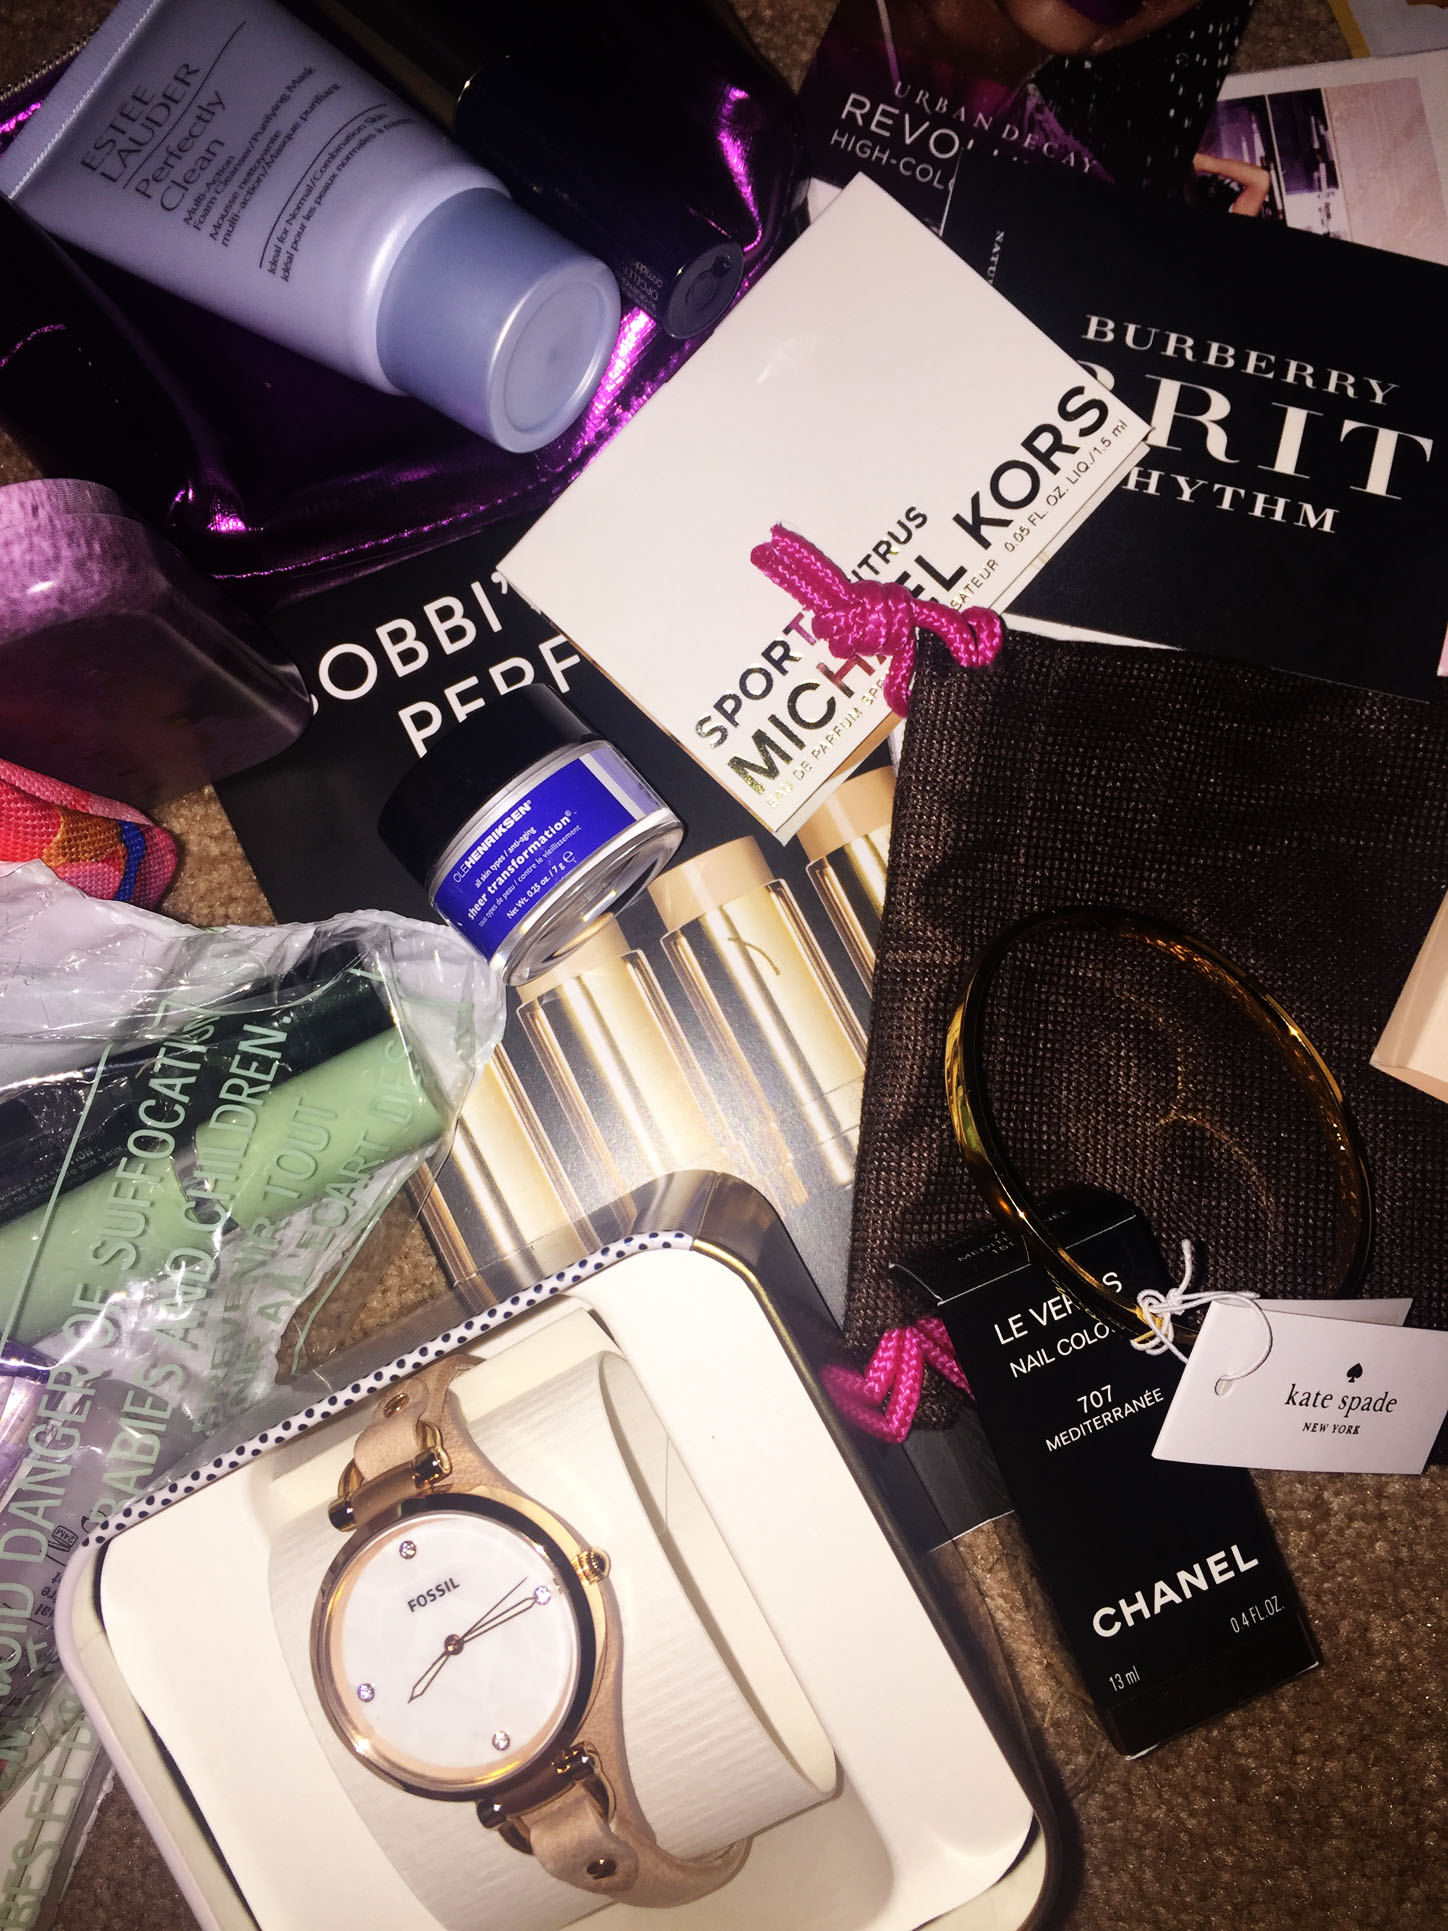 my fashion wants fan box fossil watch kate spade bracelet chanel nail polish estee lauder clinique urban decay